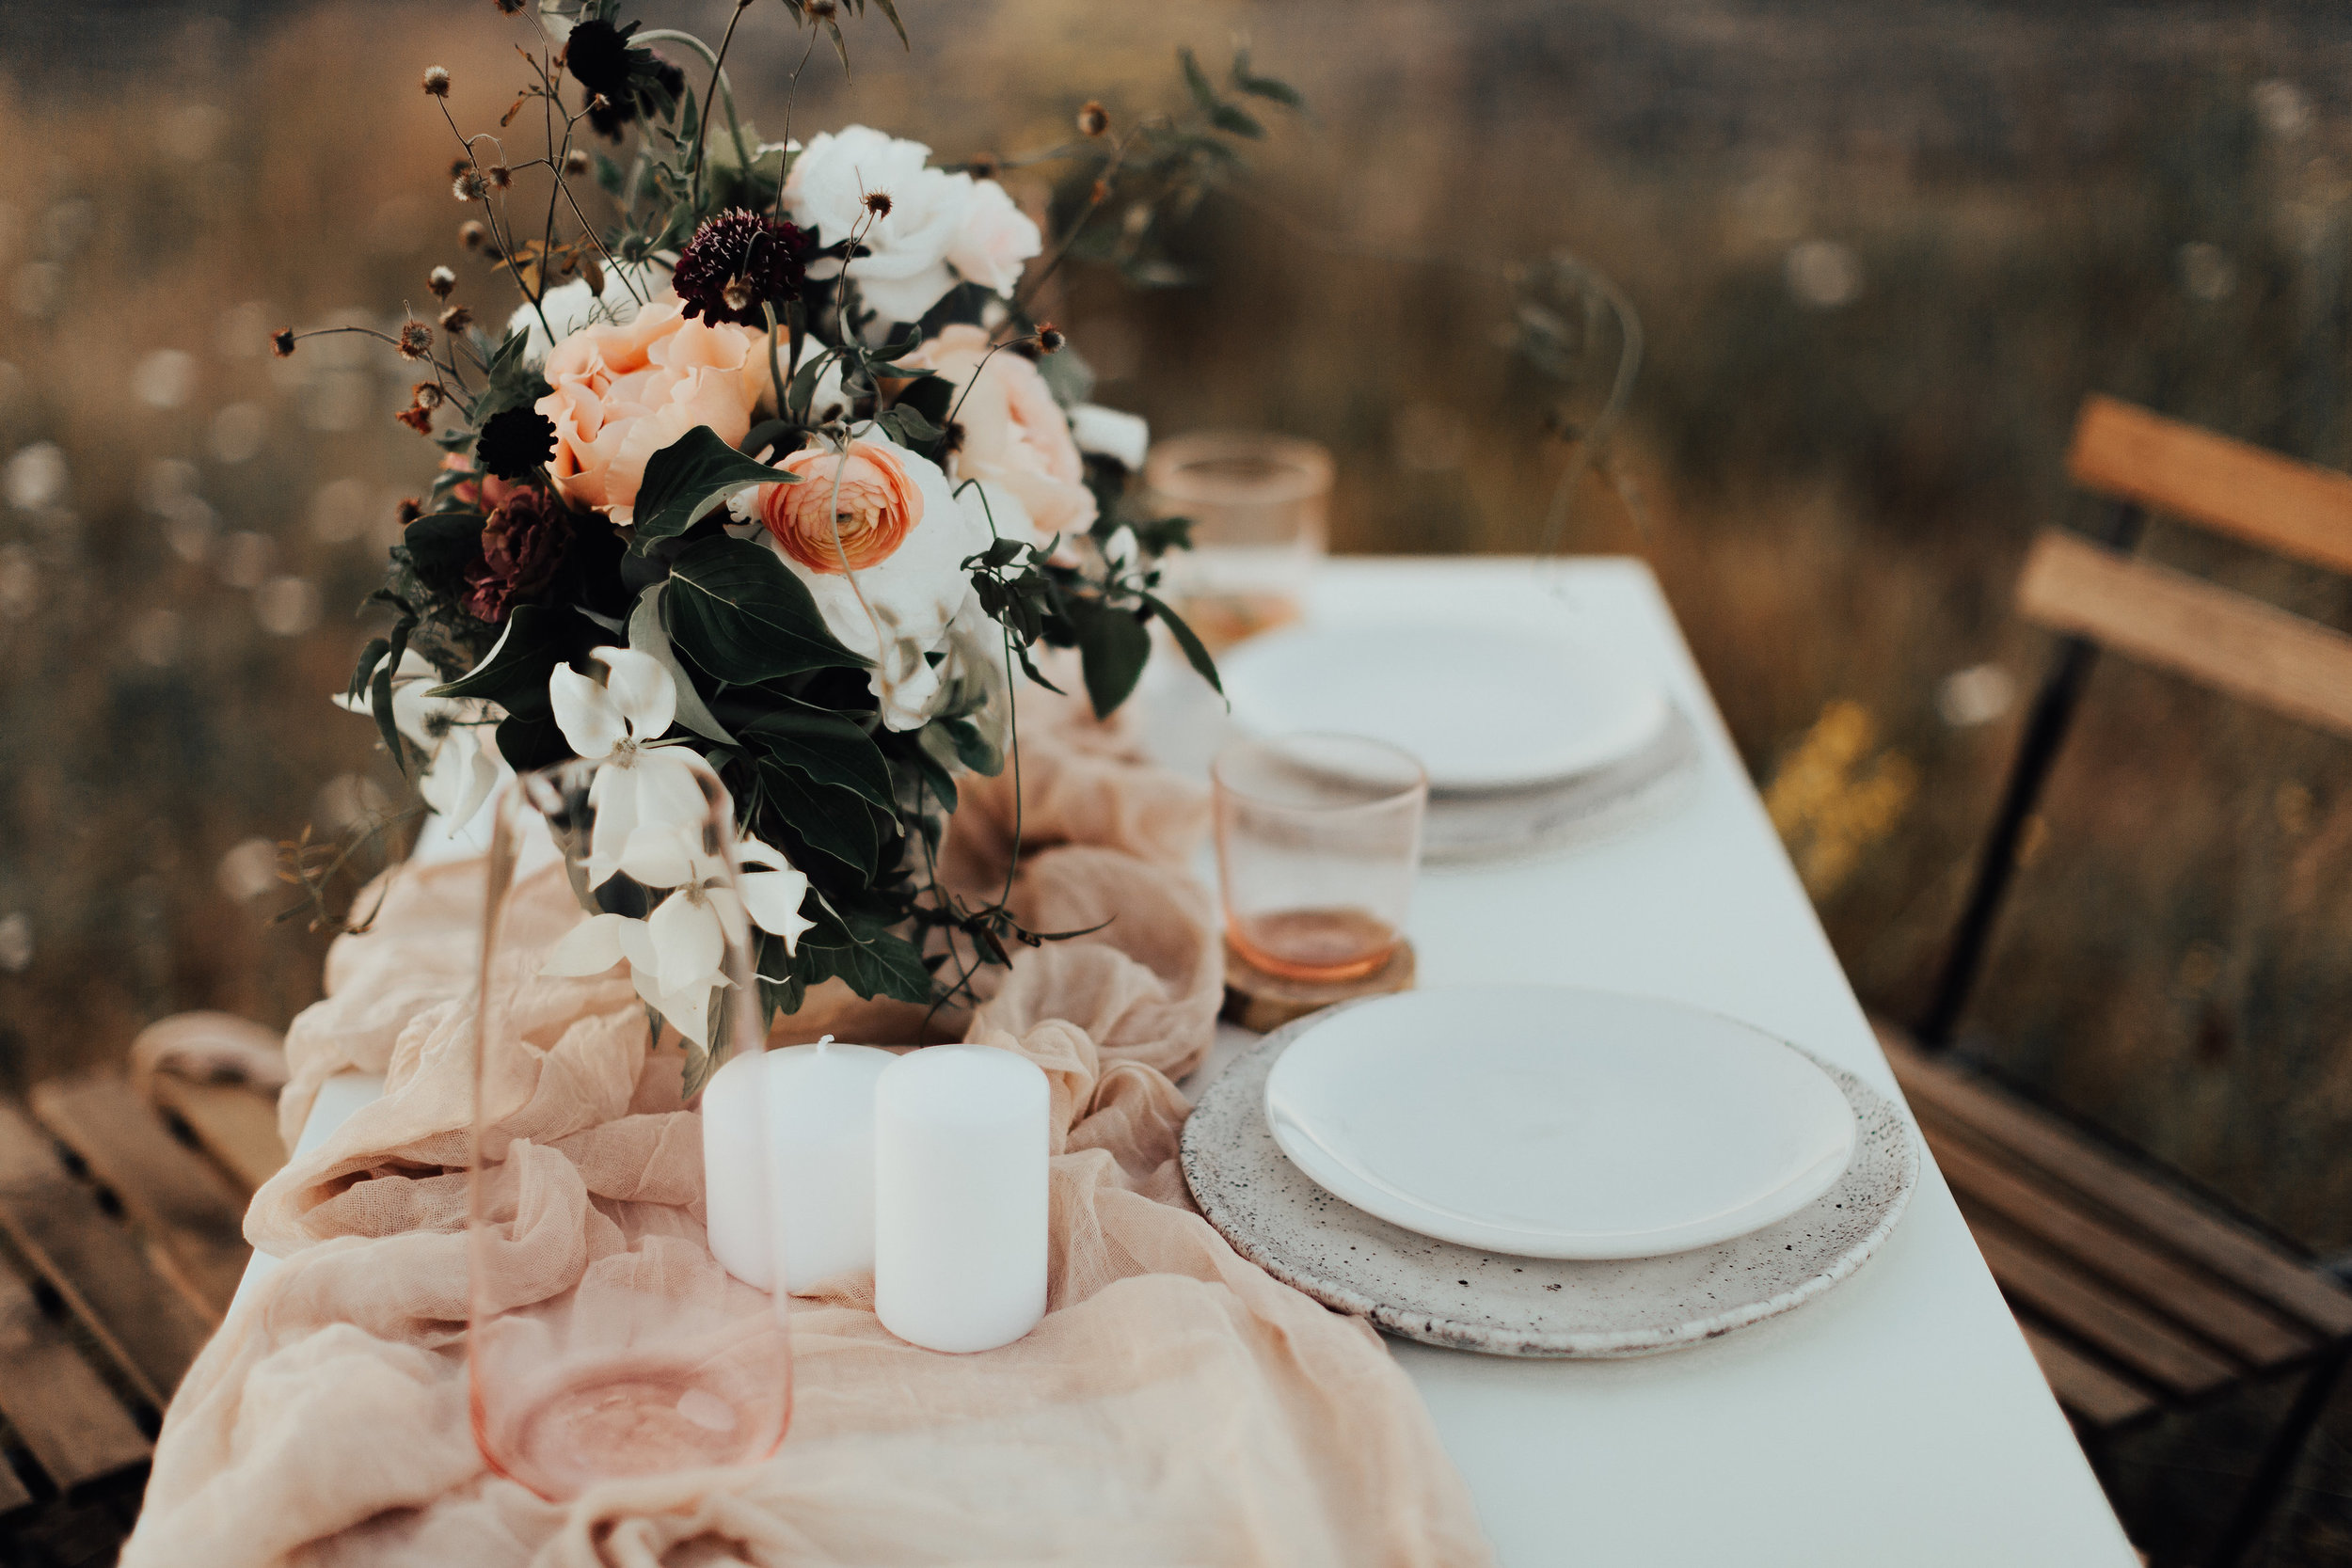 candles and table flowers